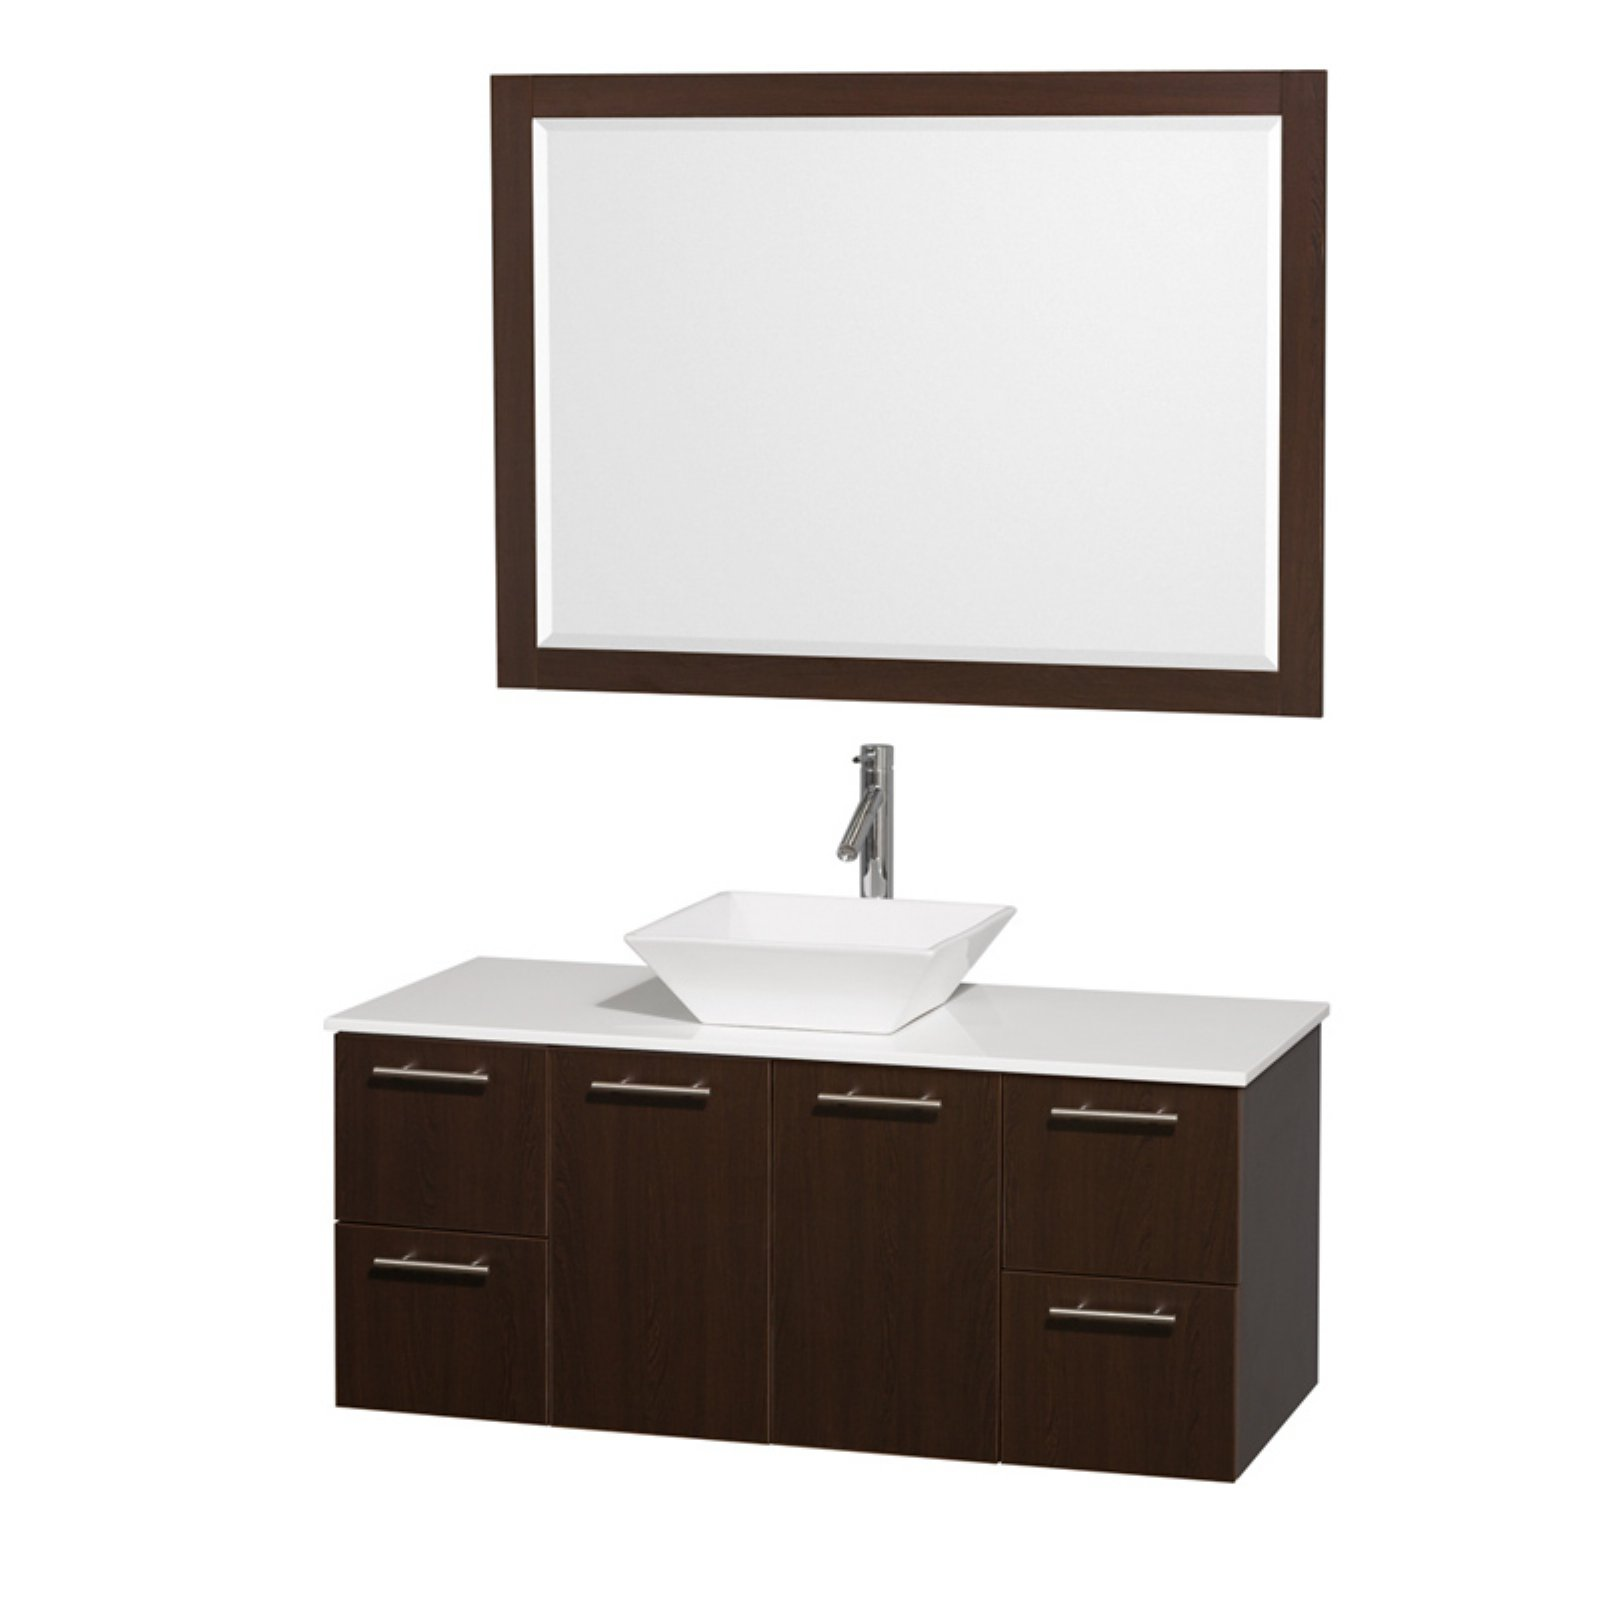 "Wyndham Collection Amare 48"" Single Bathroom Vanity in Espresso with Green Glass Top with White Porcelain Sink and 46"" Mirror"